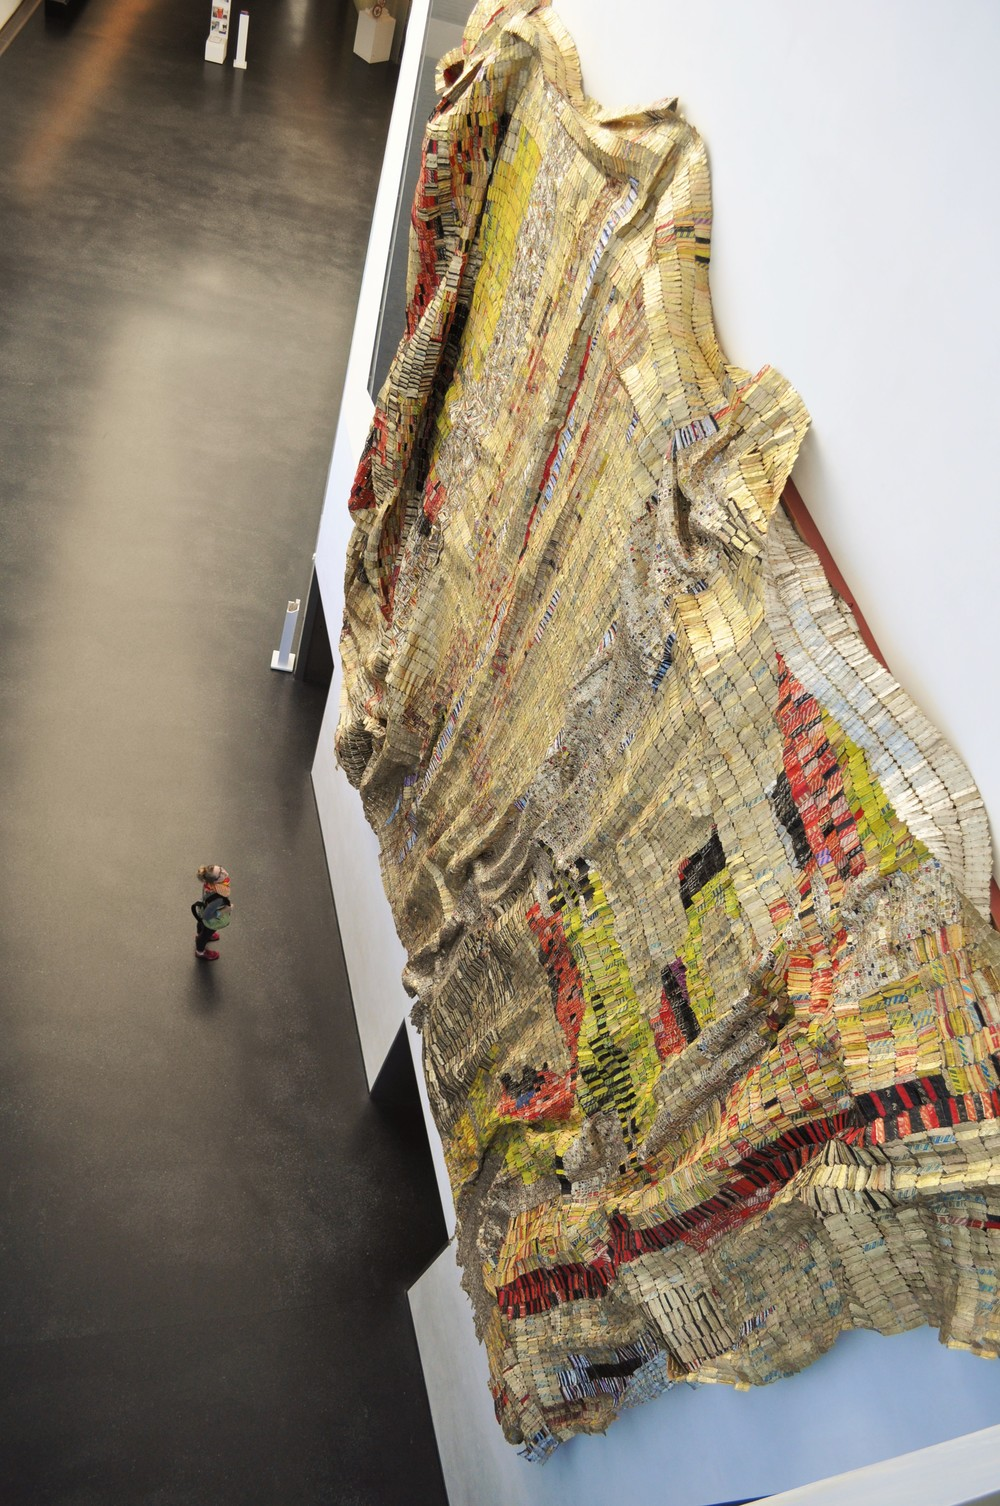 Nelson-Atkins Museum of Art El Anatsui's metal textiles